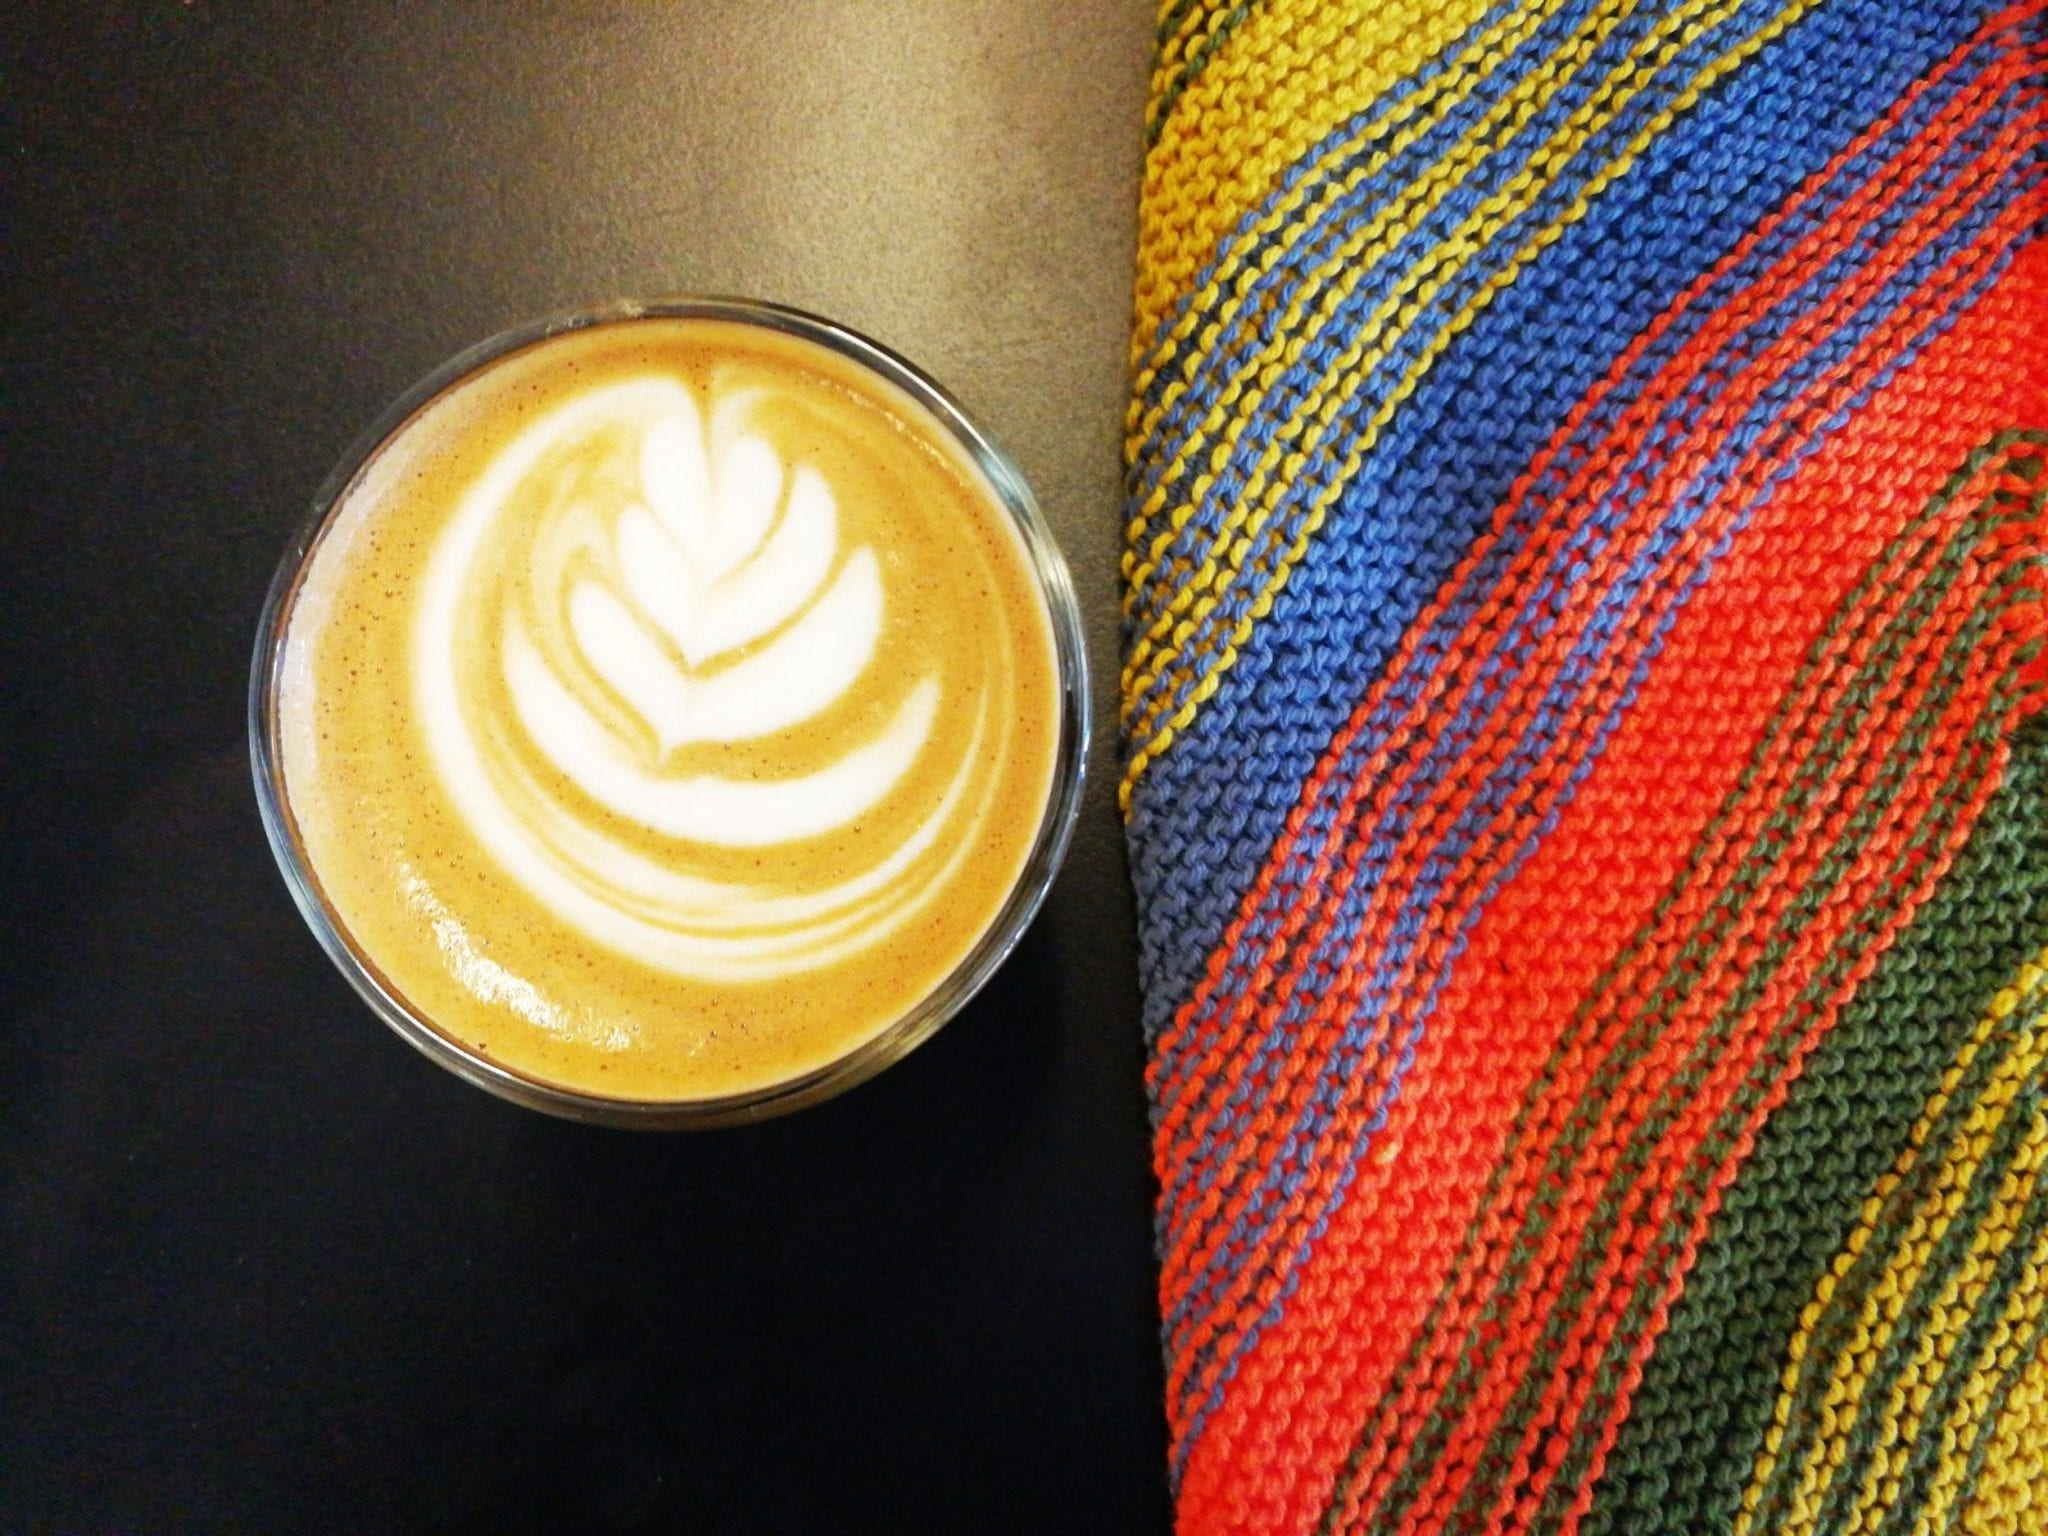 A specialty latte